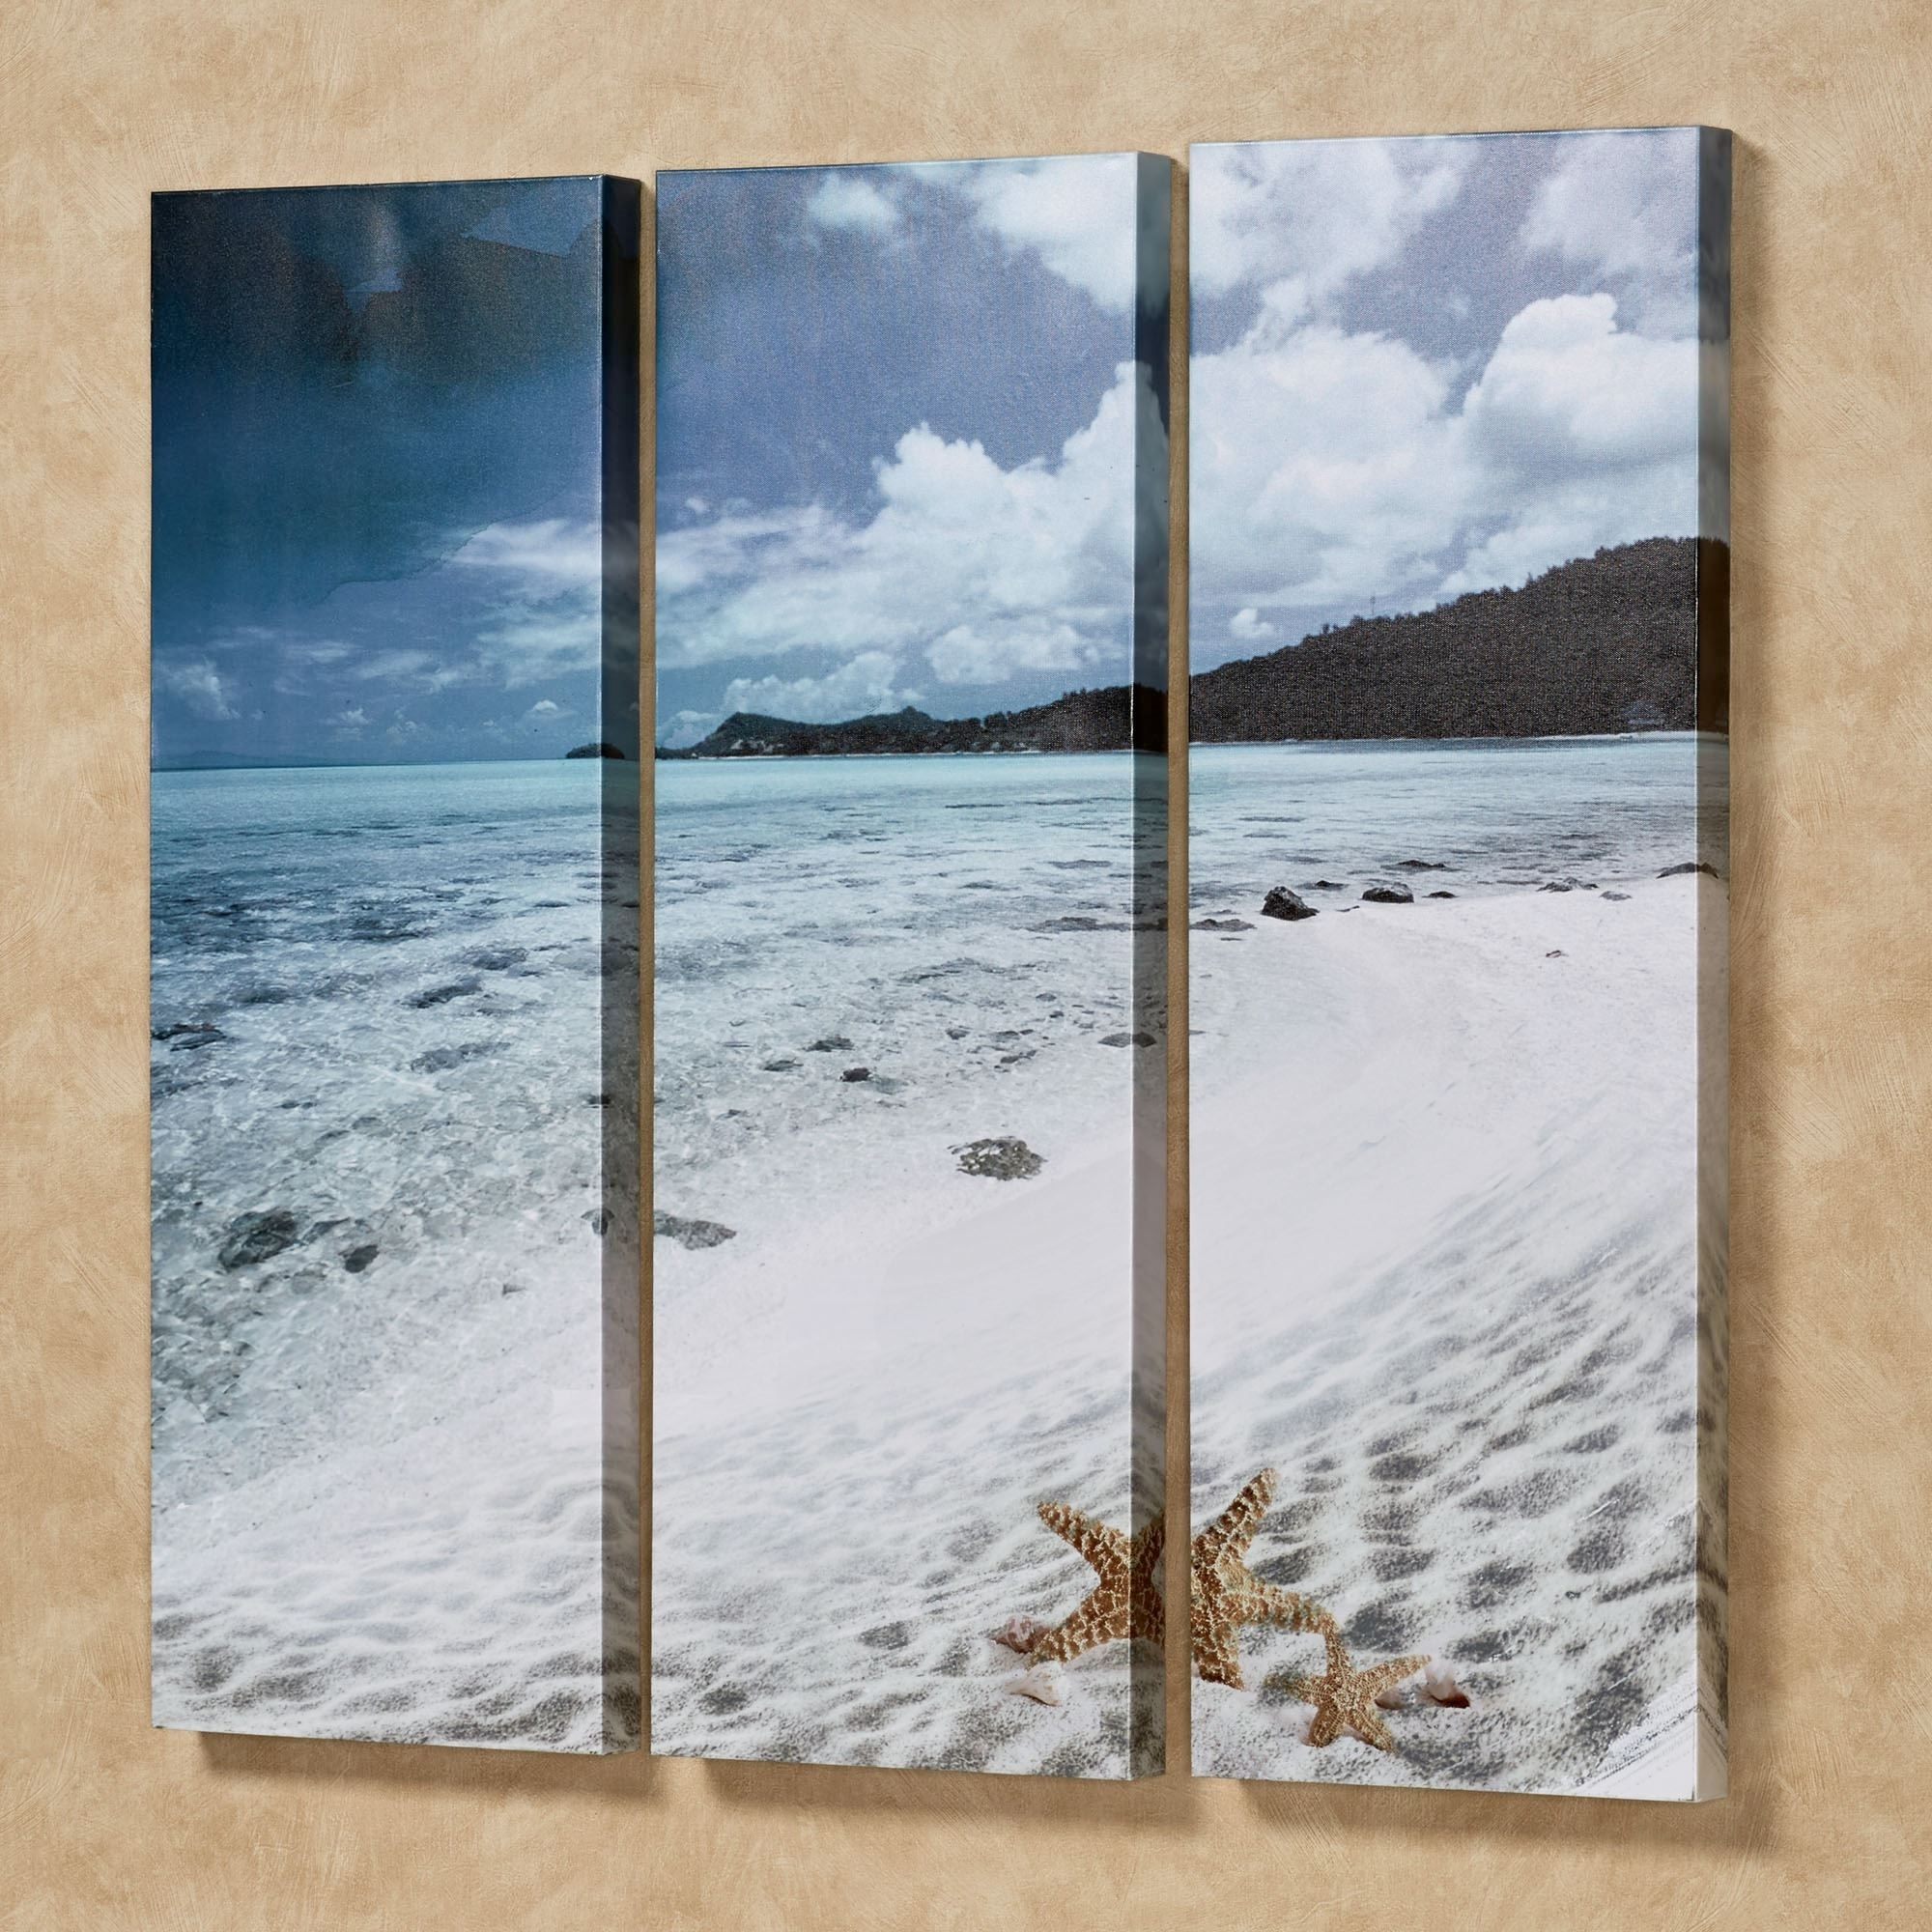 Coastal And Tropical Canvas Wall Art | Touch Of Class Intended For Best And Newest Canvas Wall Art Beach Scenes (View 4 of 15)